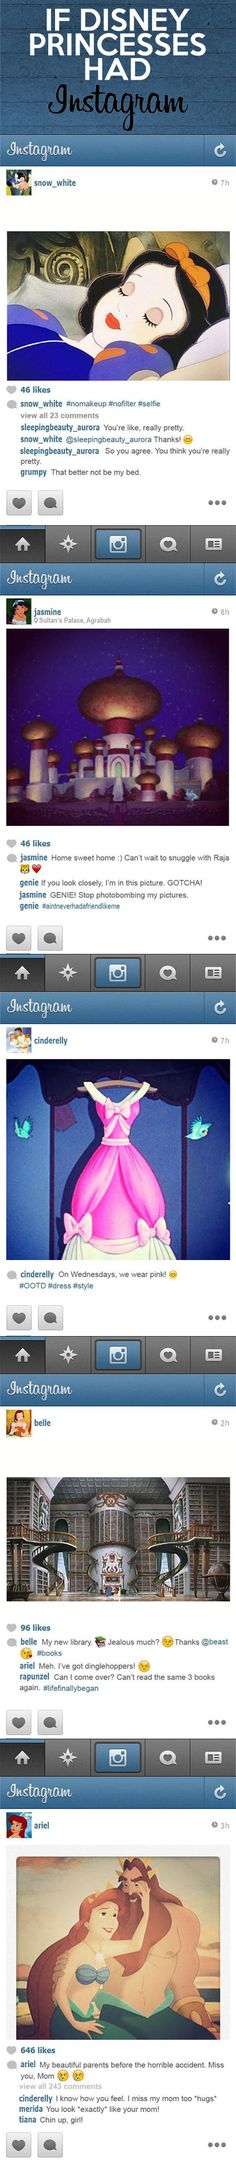 If Disney princesses had Instagram…